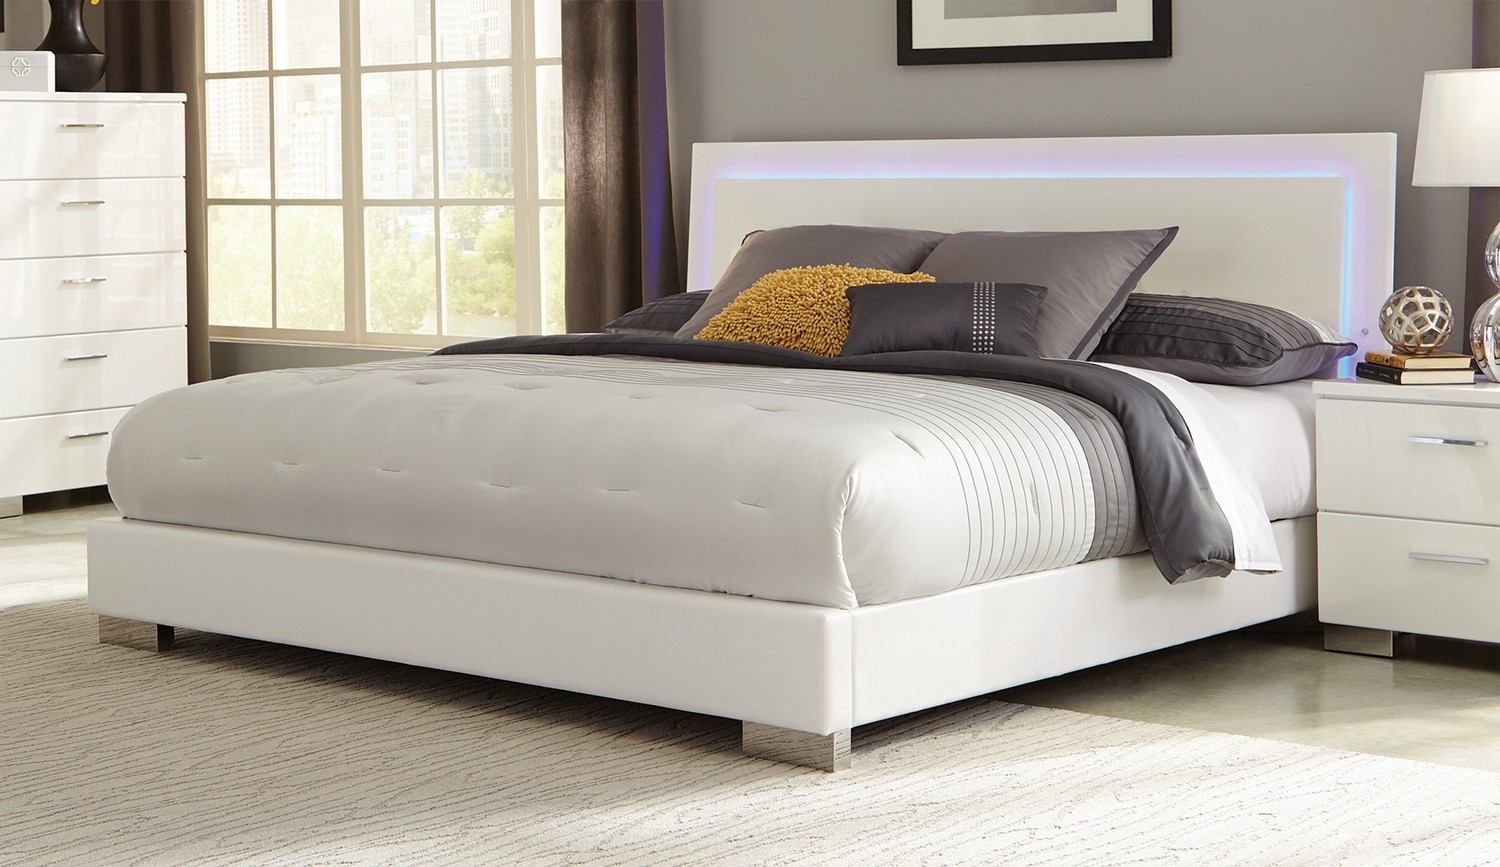 Coaster Felicity LED Lighted Bed - High Gloss White